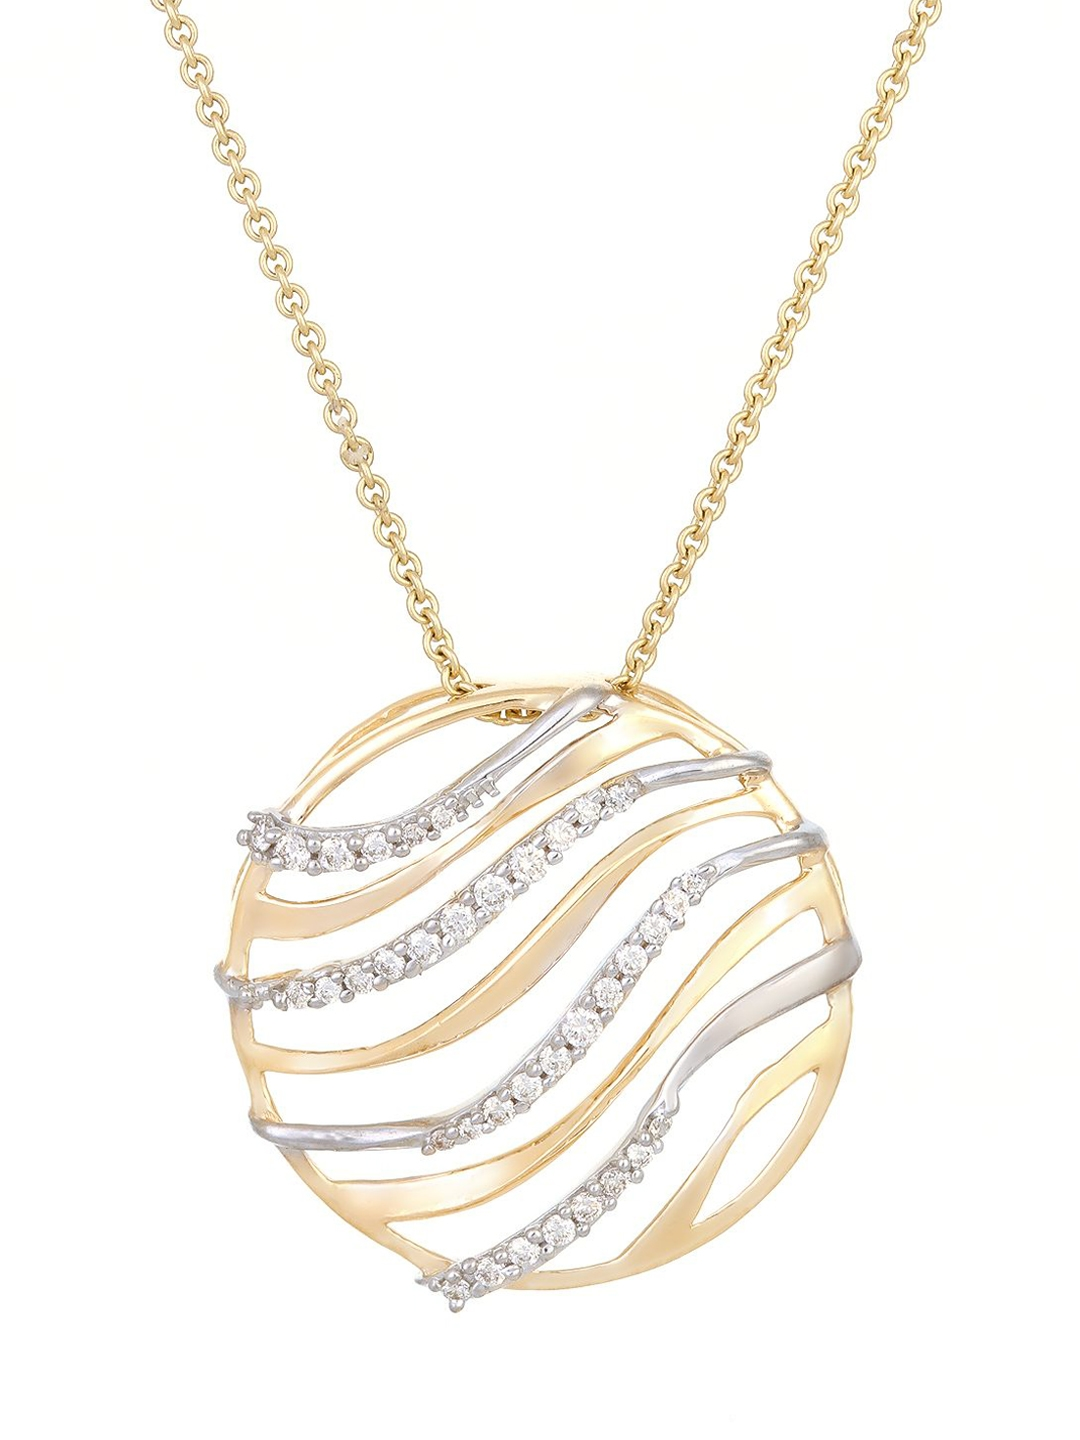 Mia by Tanishq 2.73 g 14KT Gold Pendant with Diamonds Mia by Tanishq Pendant Diamond